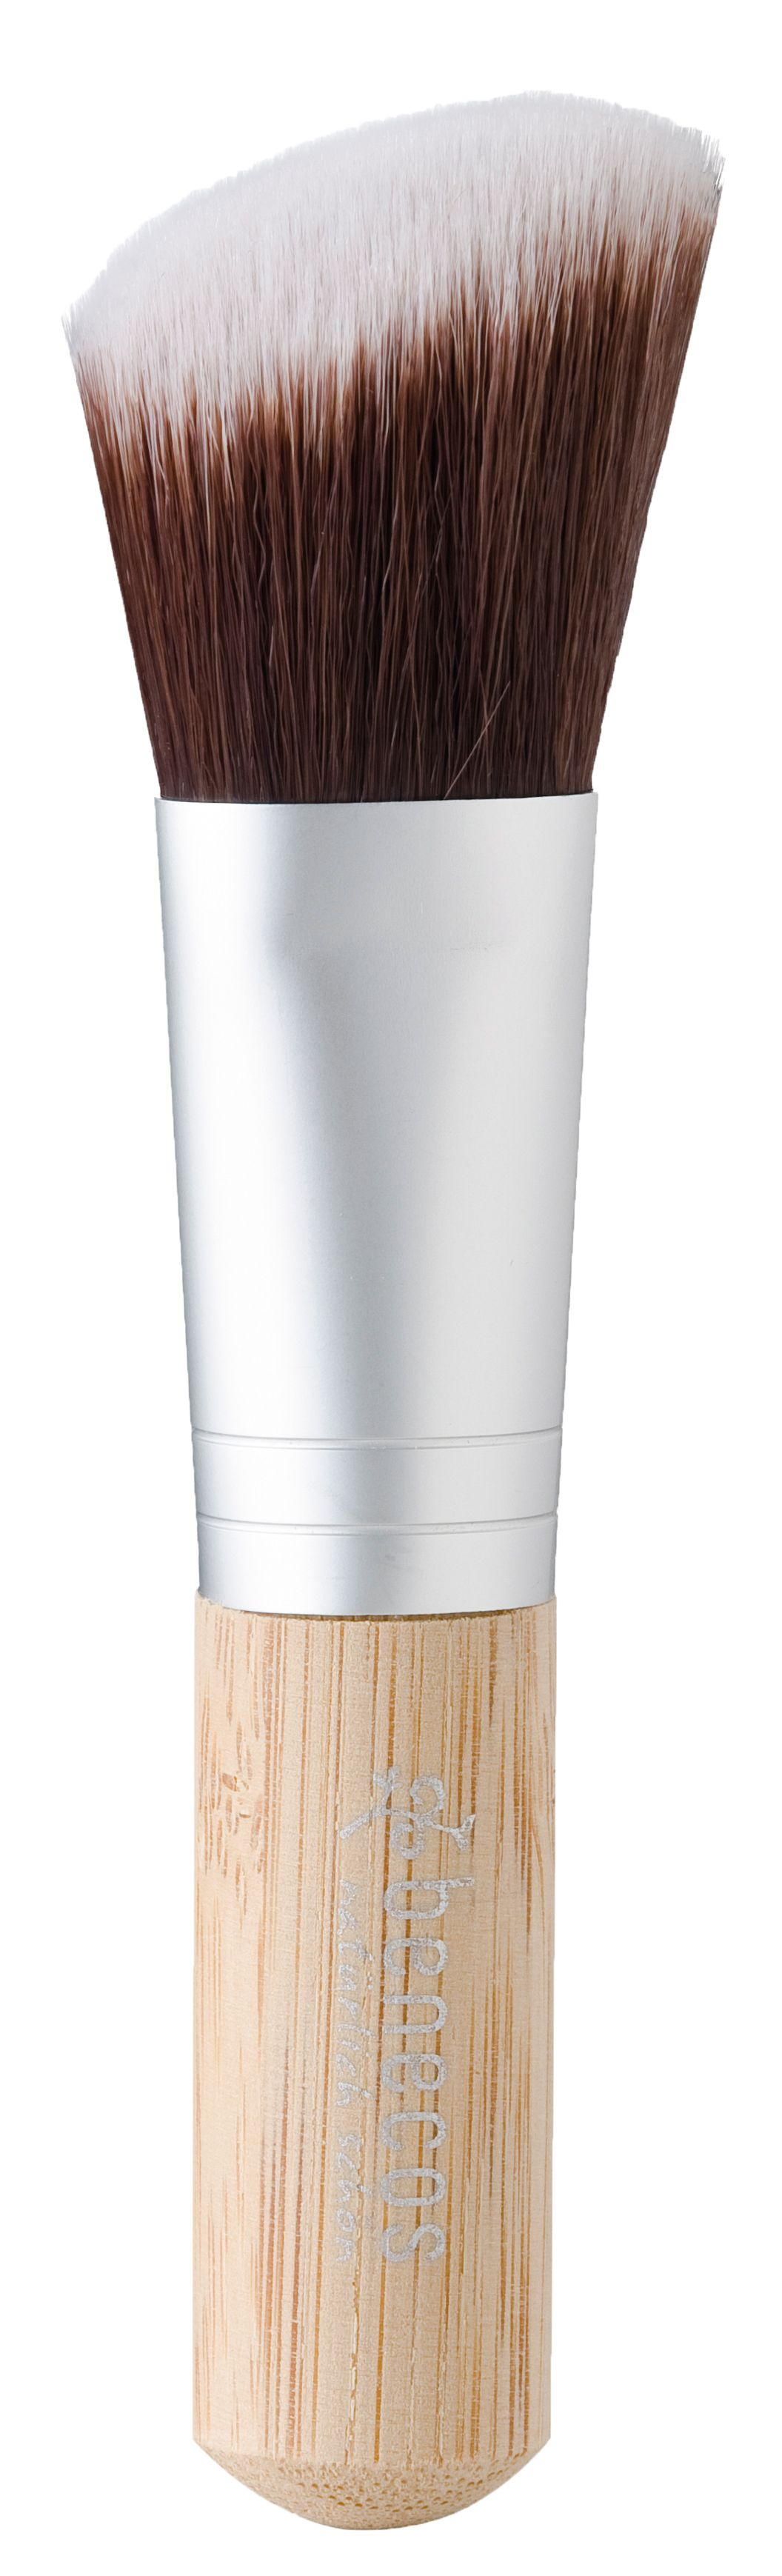 *Rouge Brush* Our selection of veganfriendly, natural